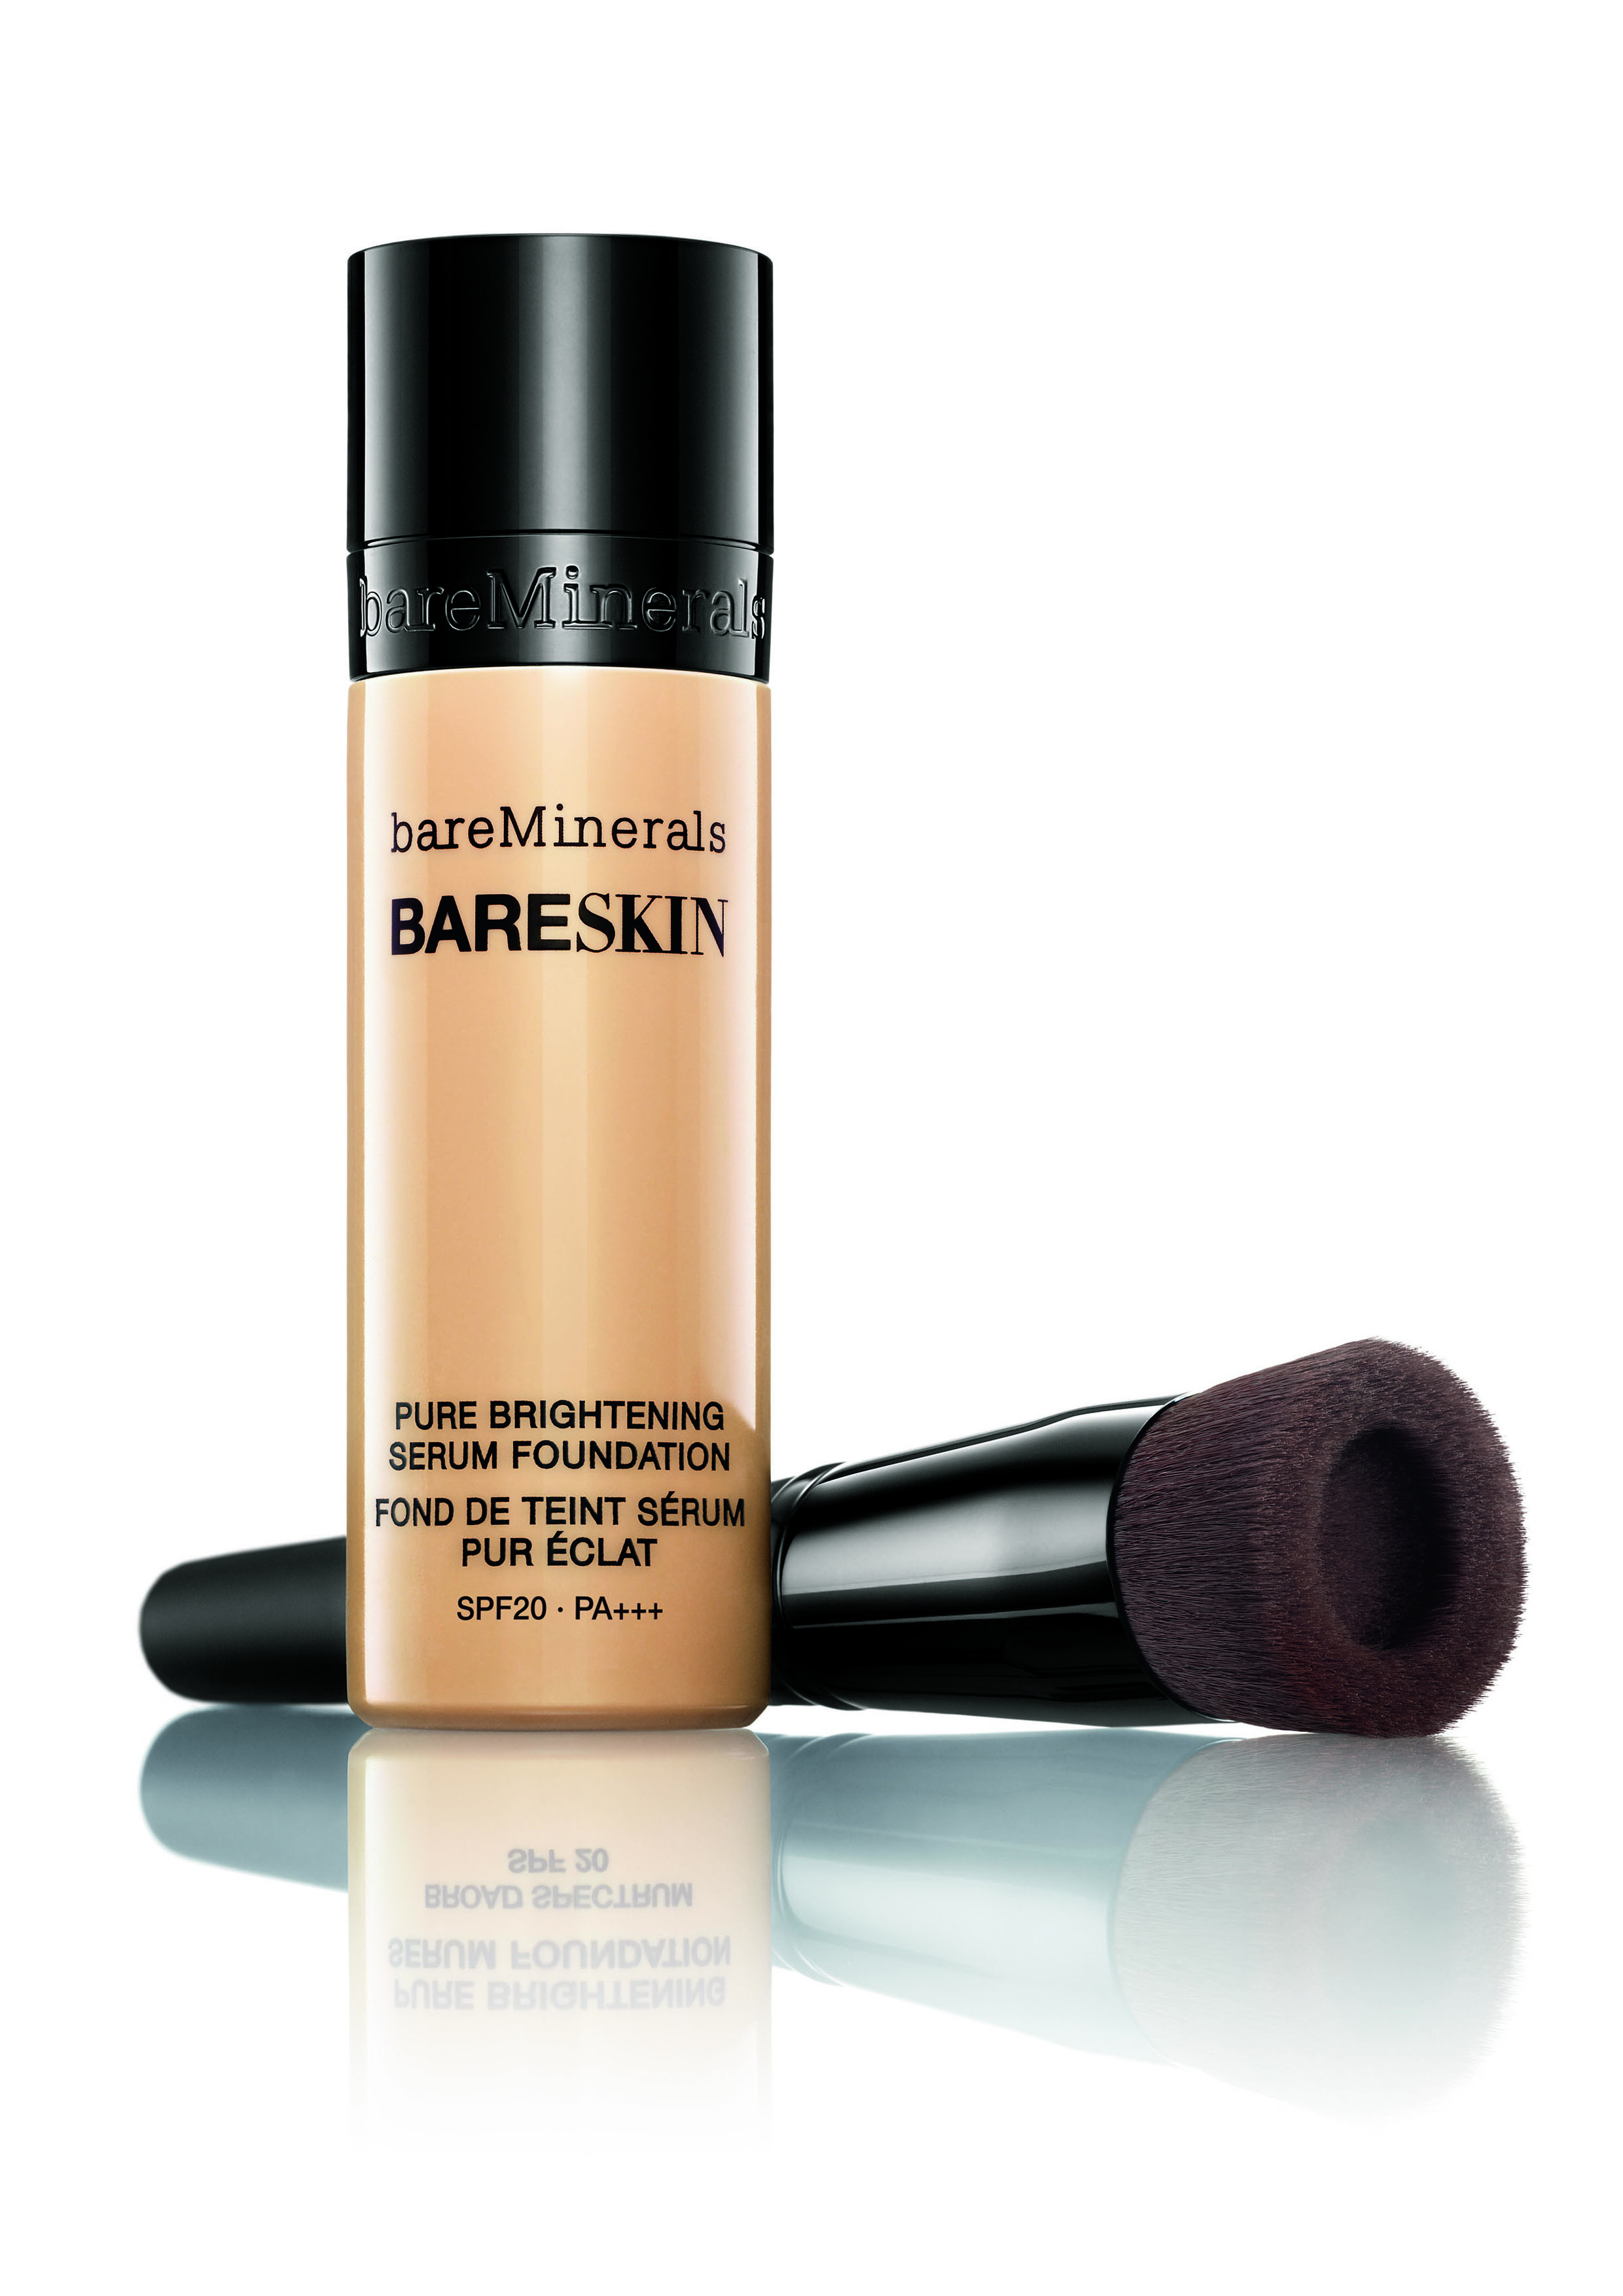 NEW! BareMinerals Brightening Serum Foundation: Bye Bye Oompa Loompa, This Offers Shade Match ...